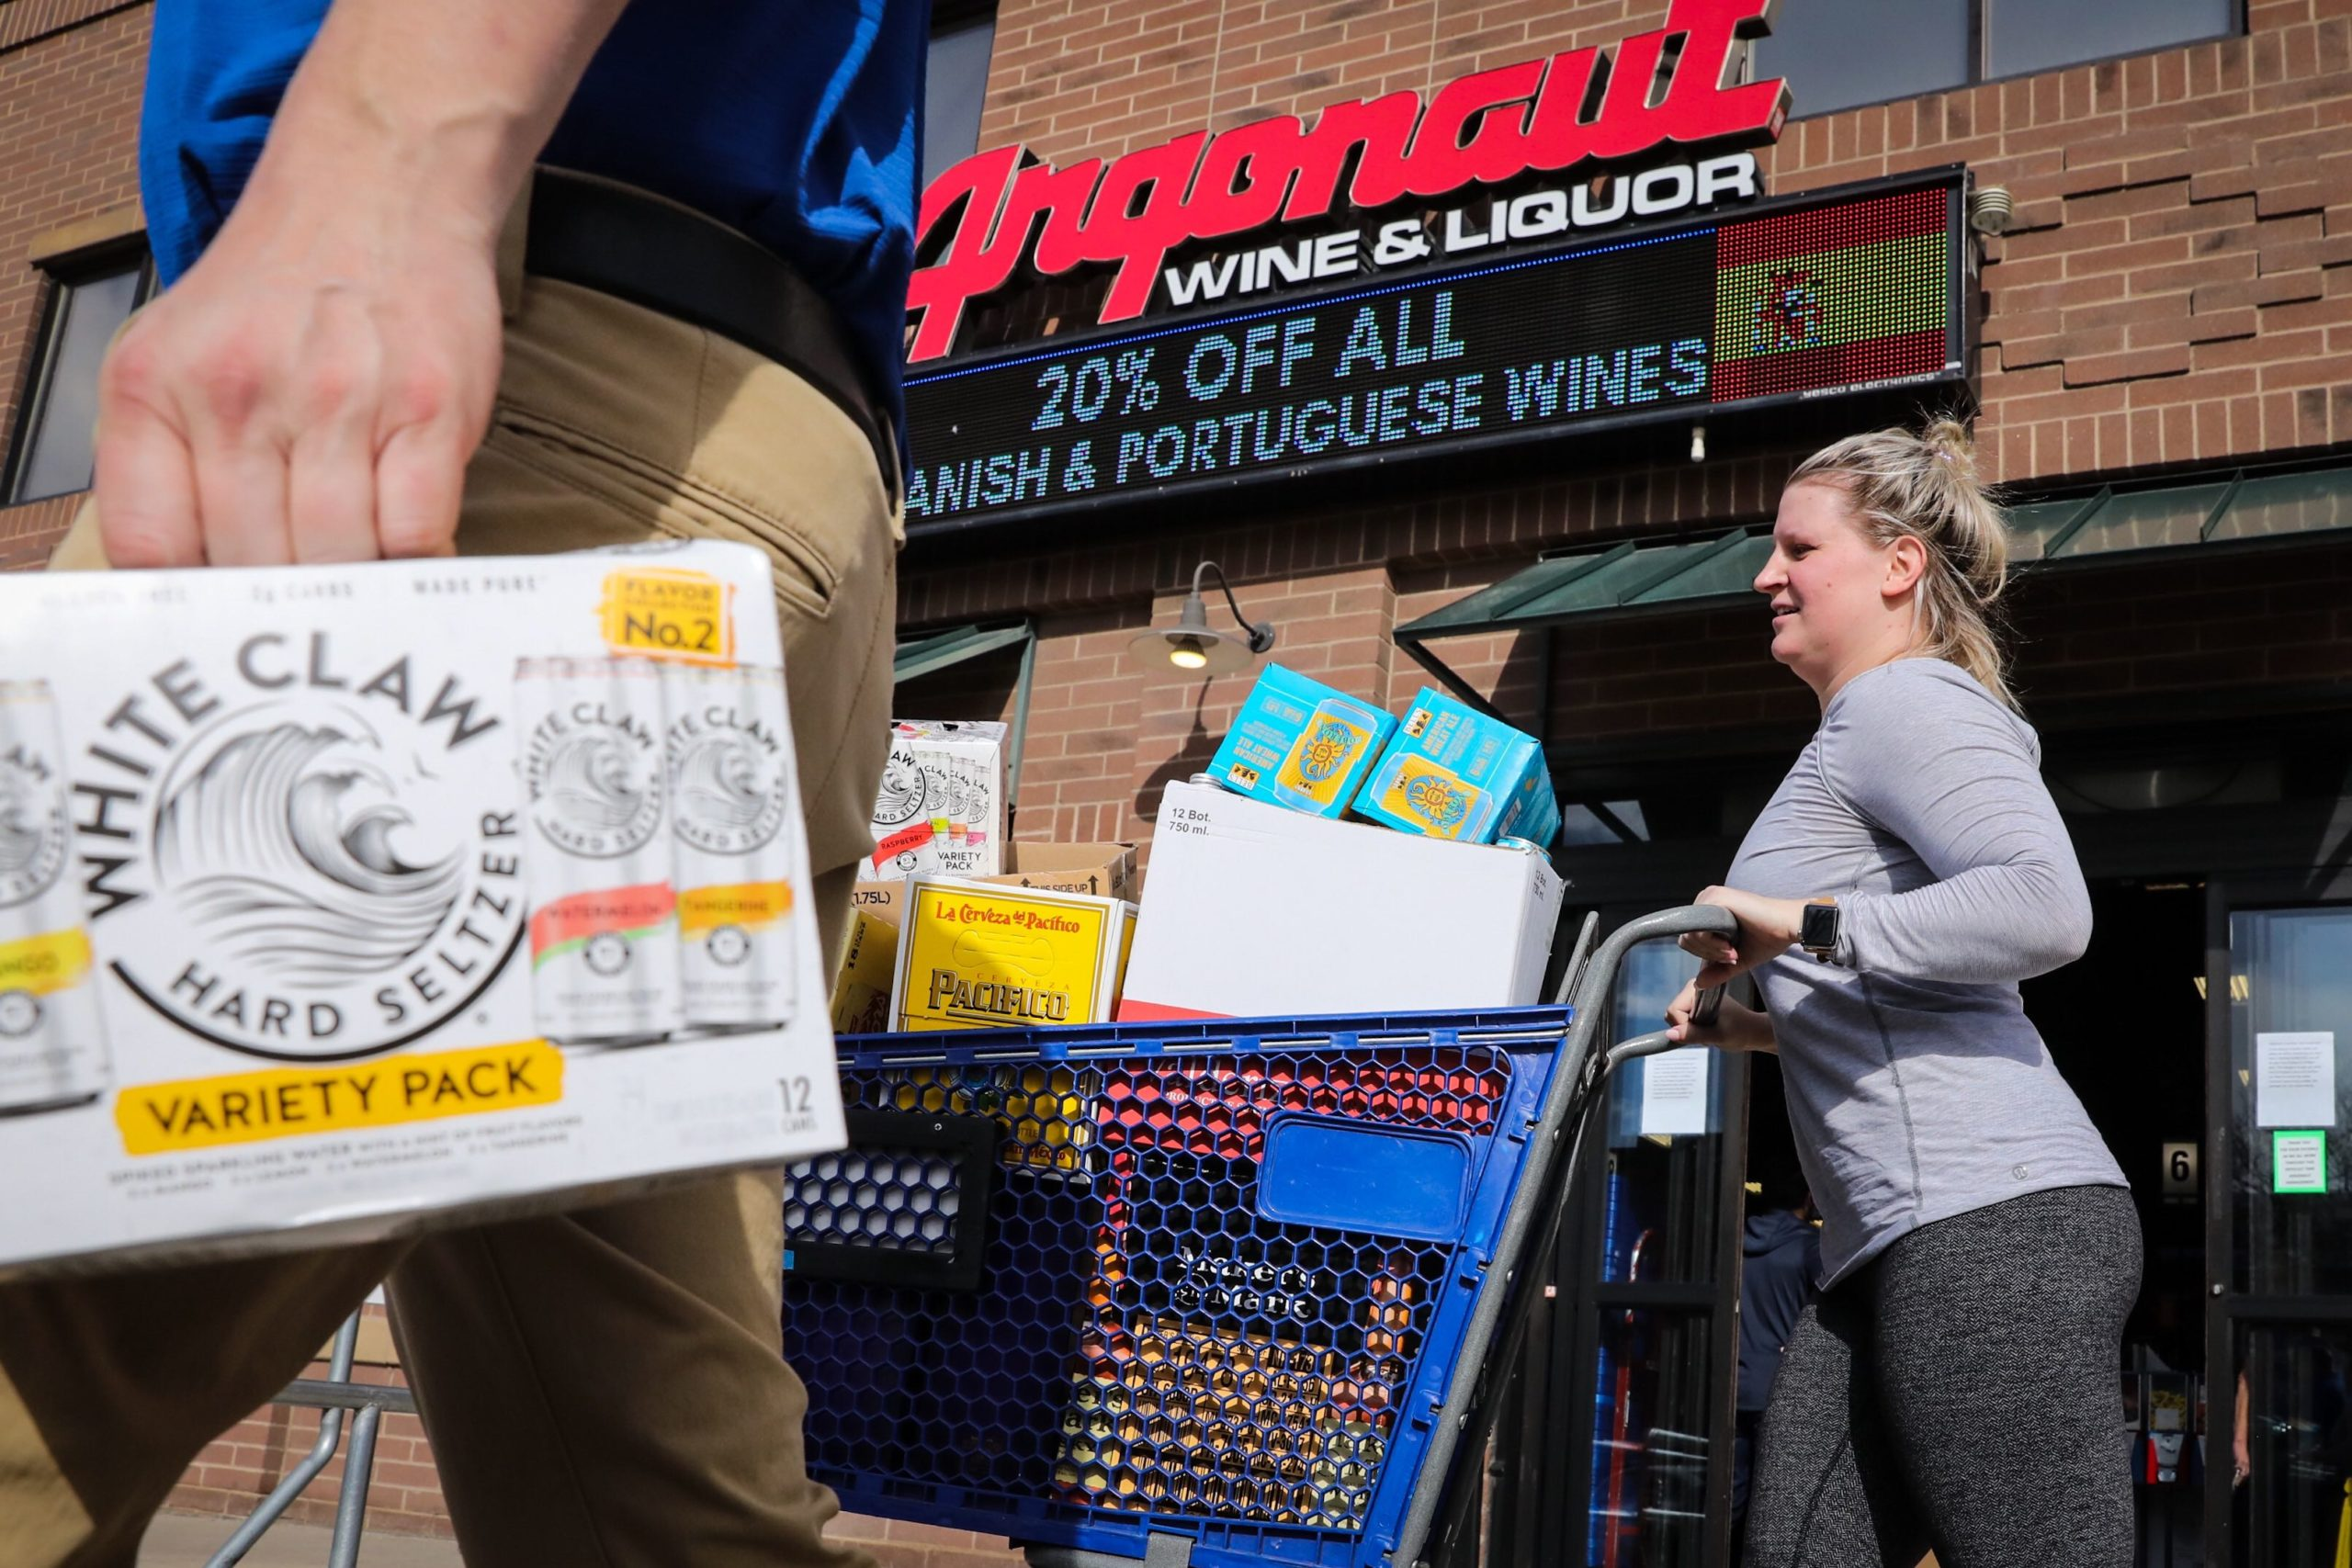 Customers lined up around Argonaut Liquors on Colfax Avenue and left with carts piled high on Monday, March 23 after Denver Mayor Michael Hancock ordered liquor stores and pot shops to be closed by 5 p.m. Tuesday to combat coronavirus.